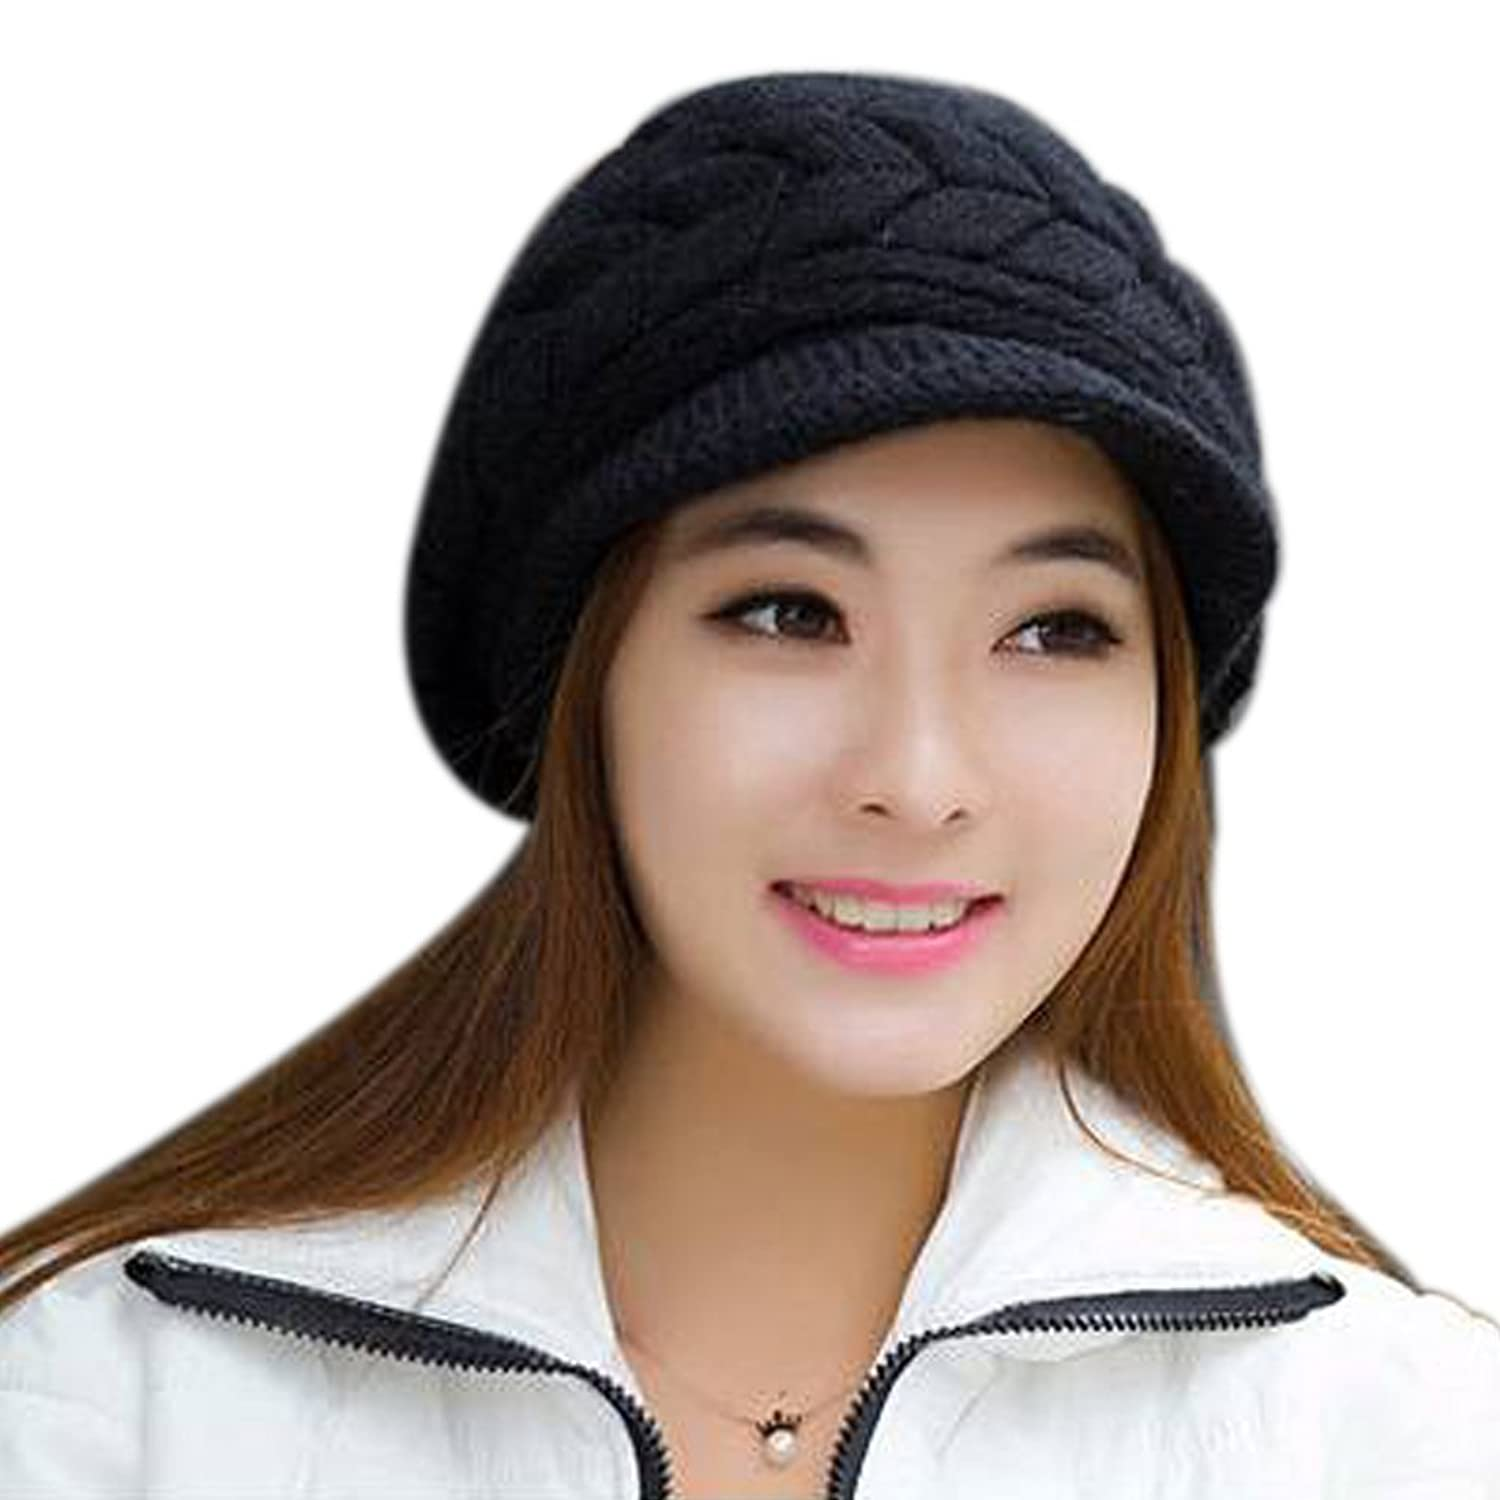 AINOW Women Winter Warm Knit Hat Wool Snow Ski Caps With Visor